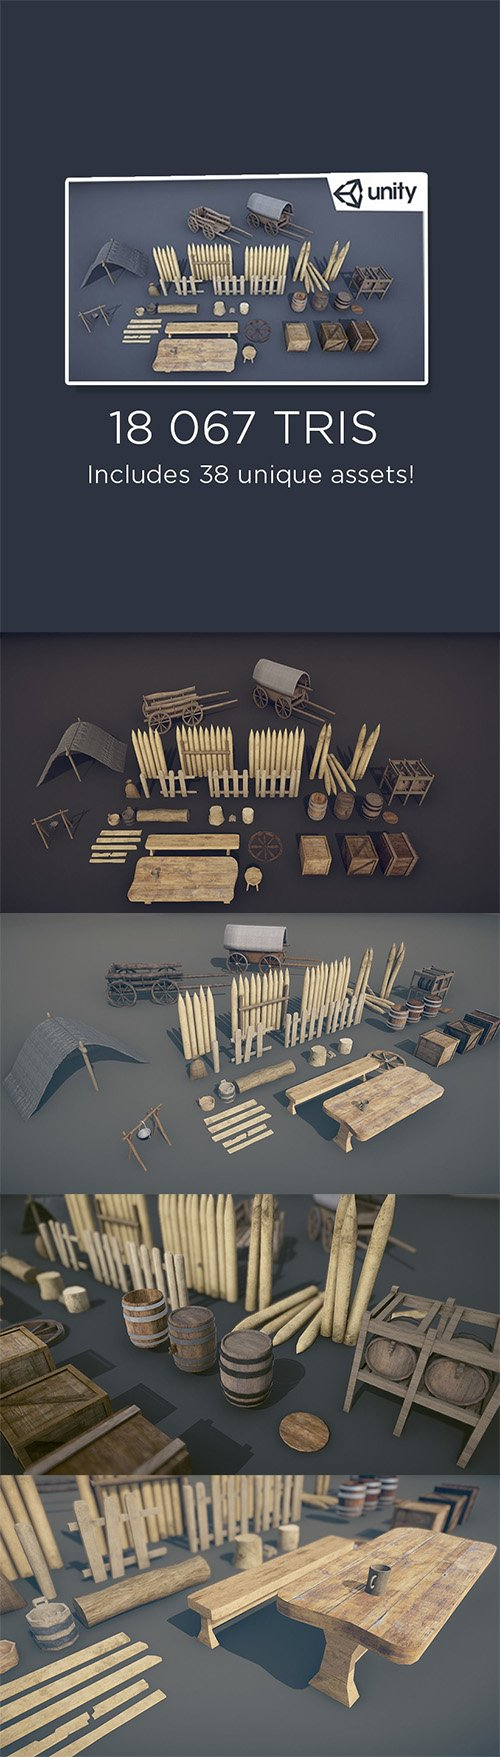 Medieval Props - Mega Pack Low-poly 3D model Low-poly 3D model - Cgtrader